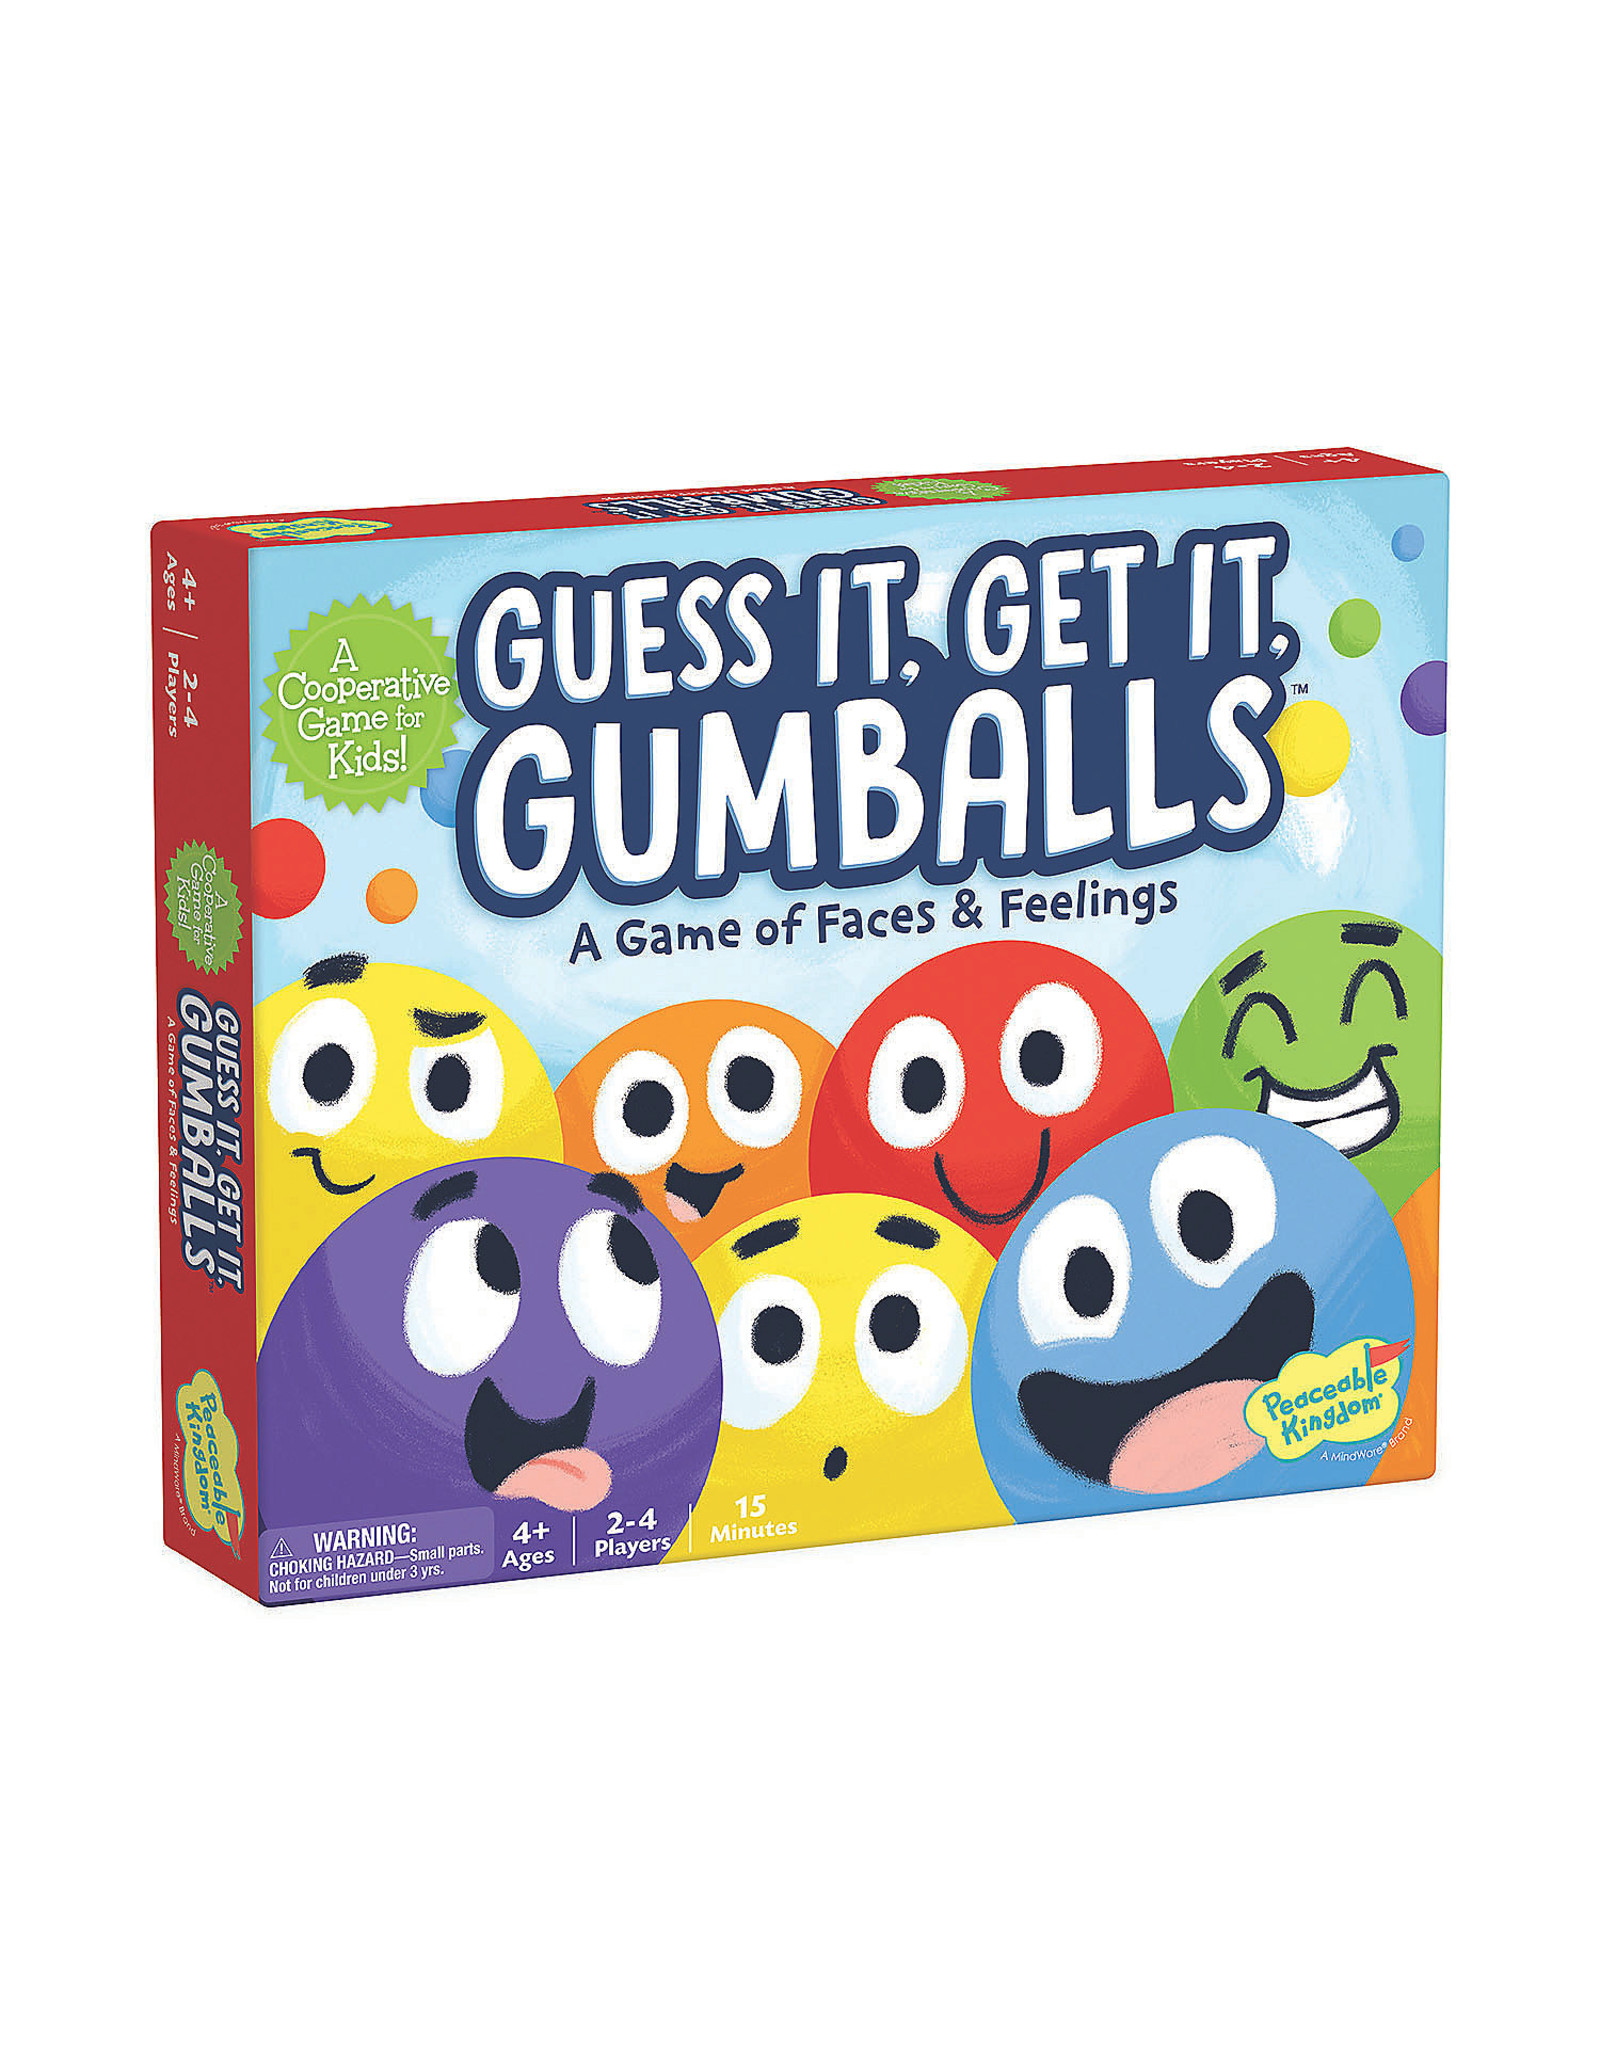 Peaceable Kingdom Guess It, Get It, Gumballs